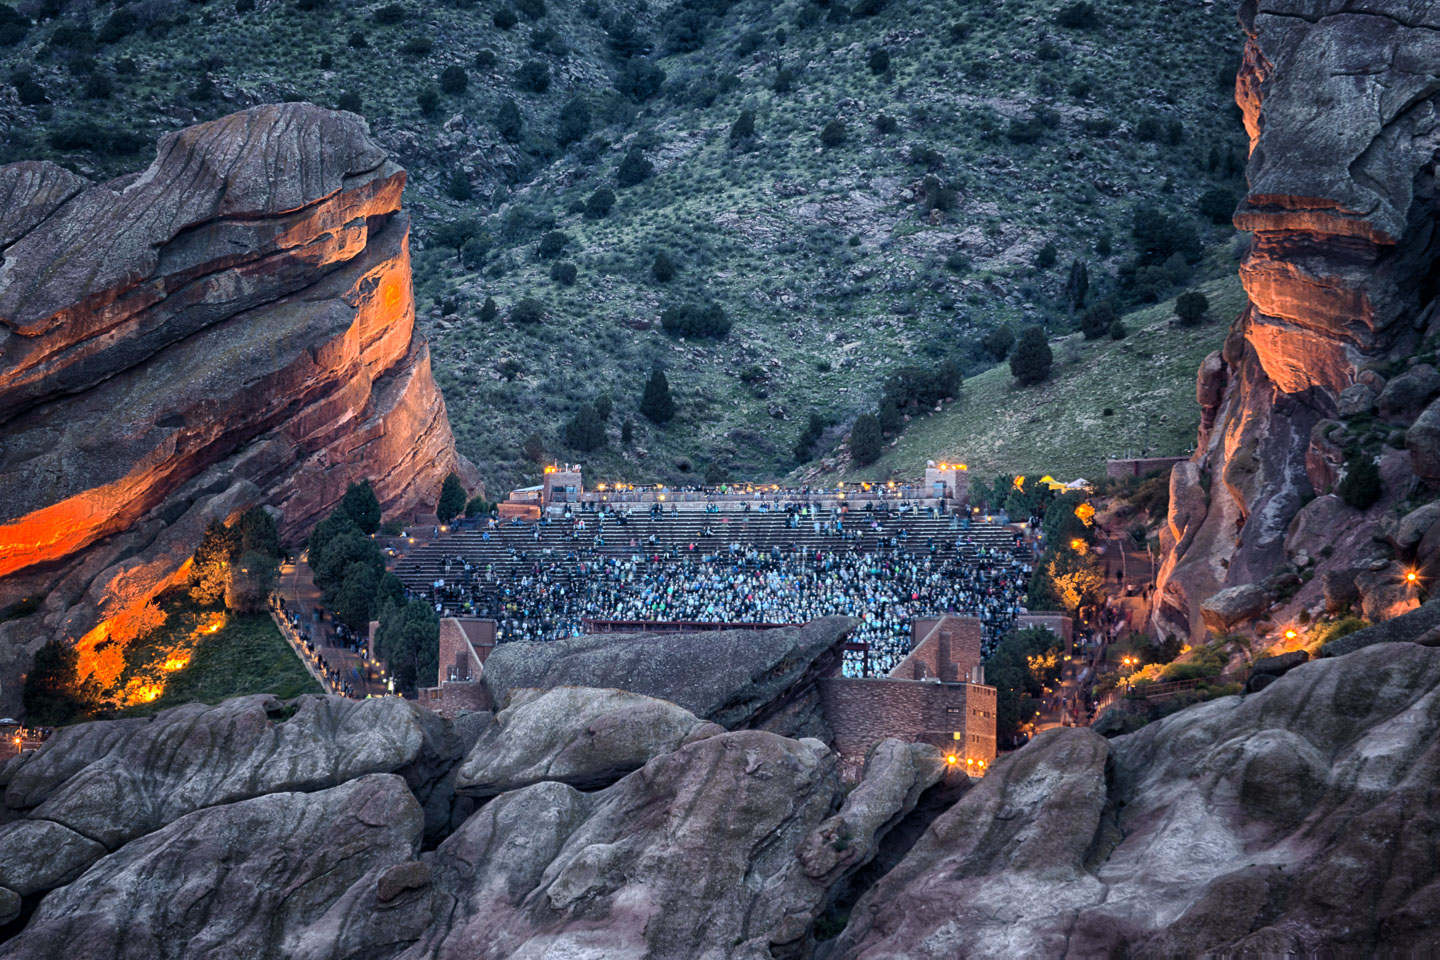 red-rocks-amphitheater-128.jpg